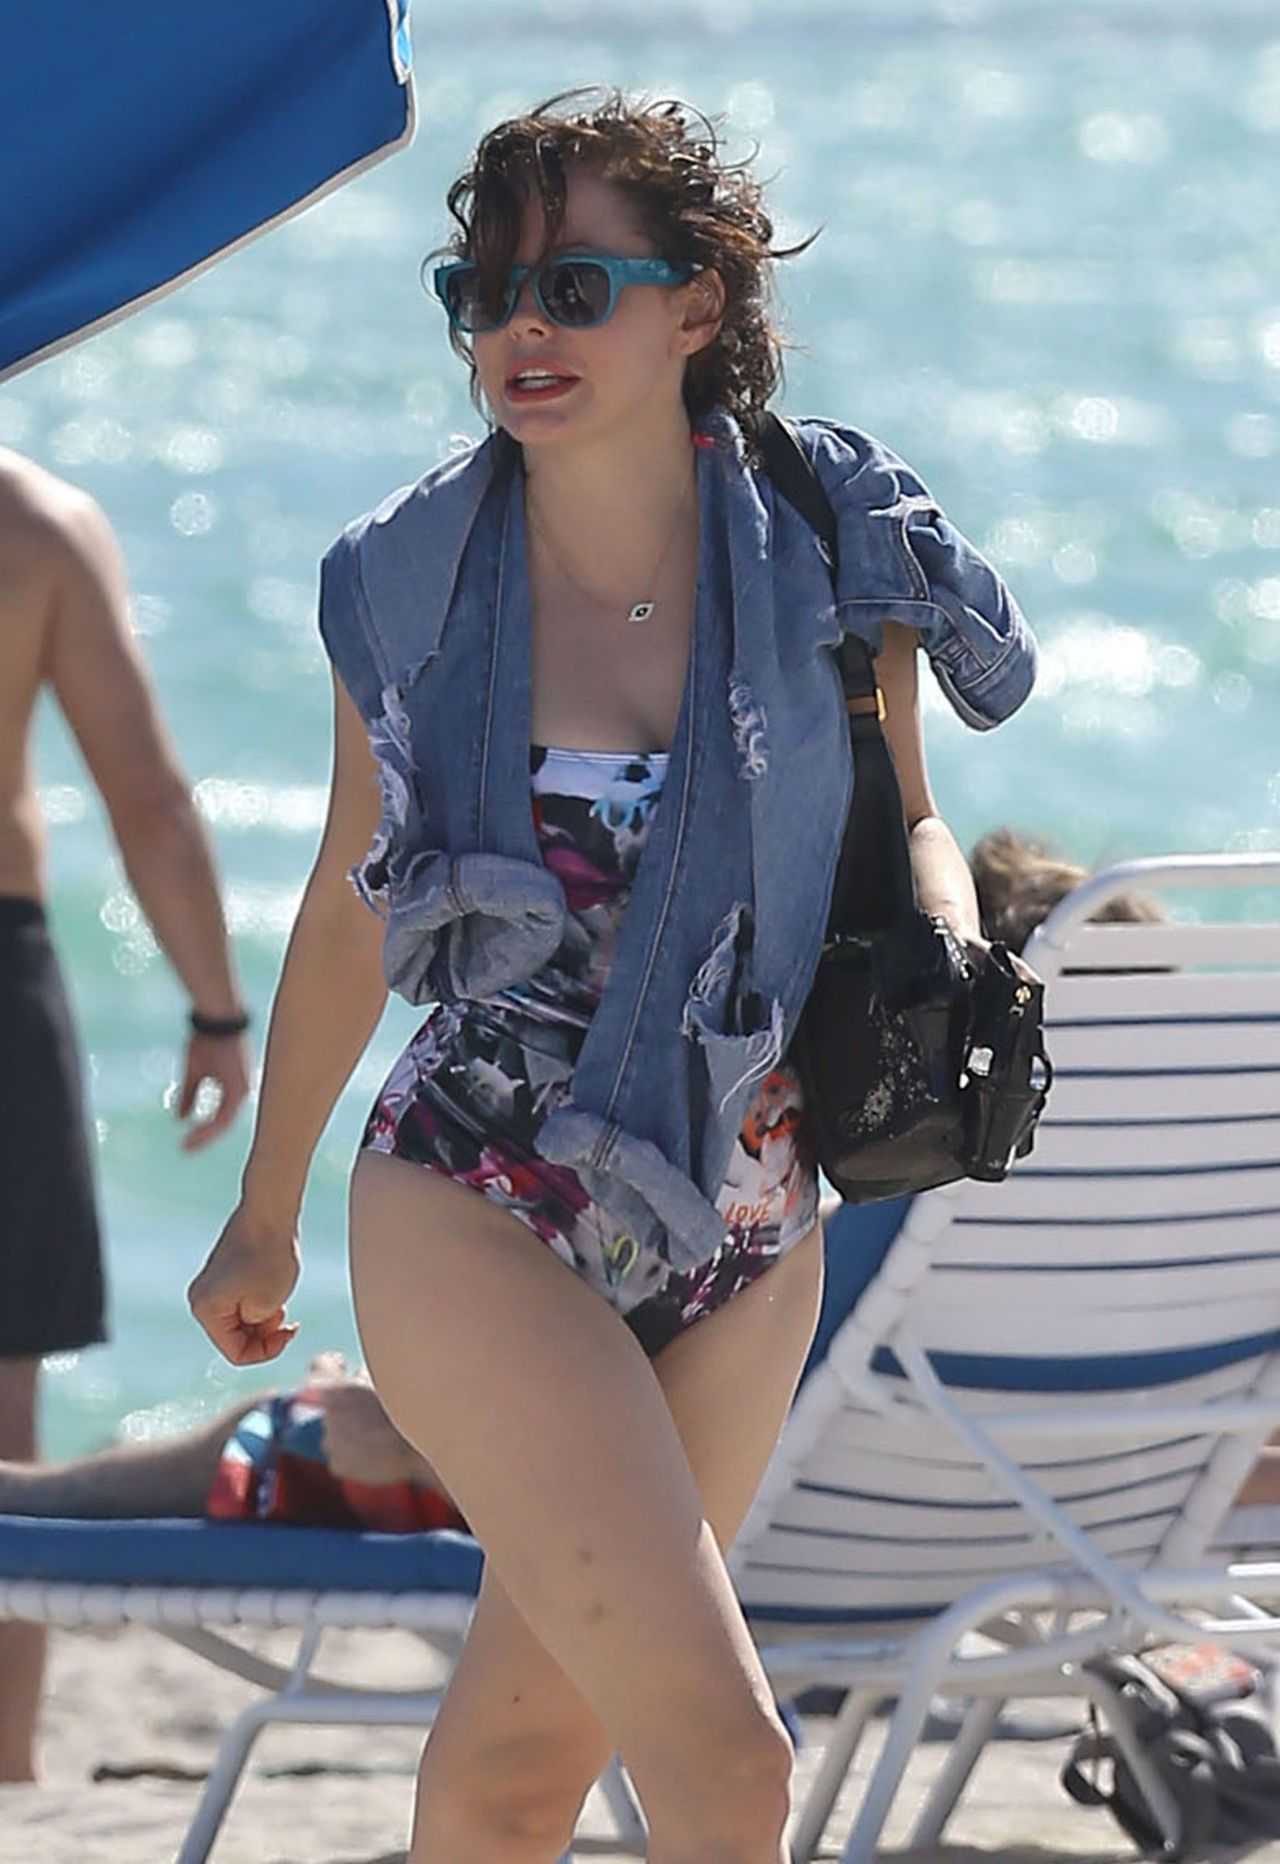 Rose Mcgowan In A Swimsuit At A Miami Beach December 2013